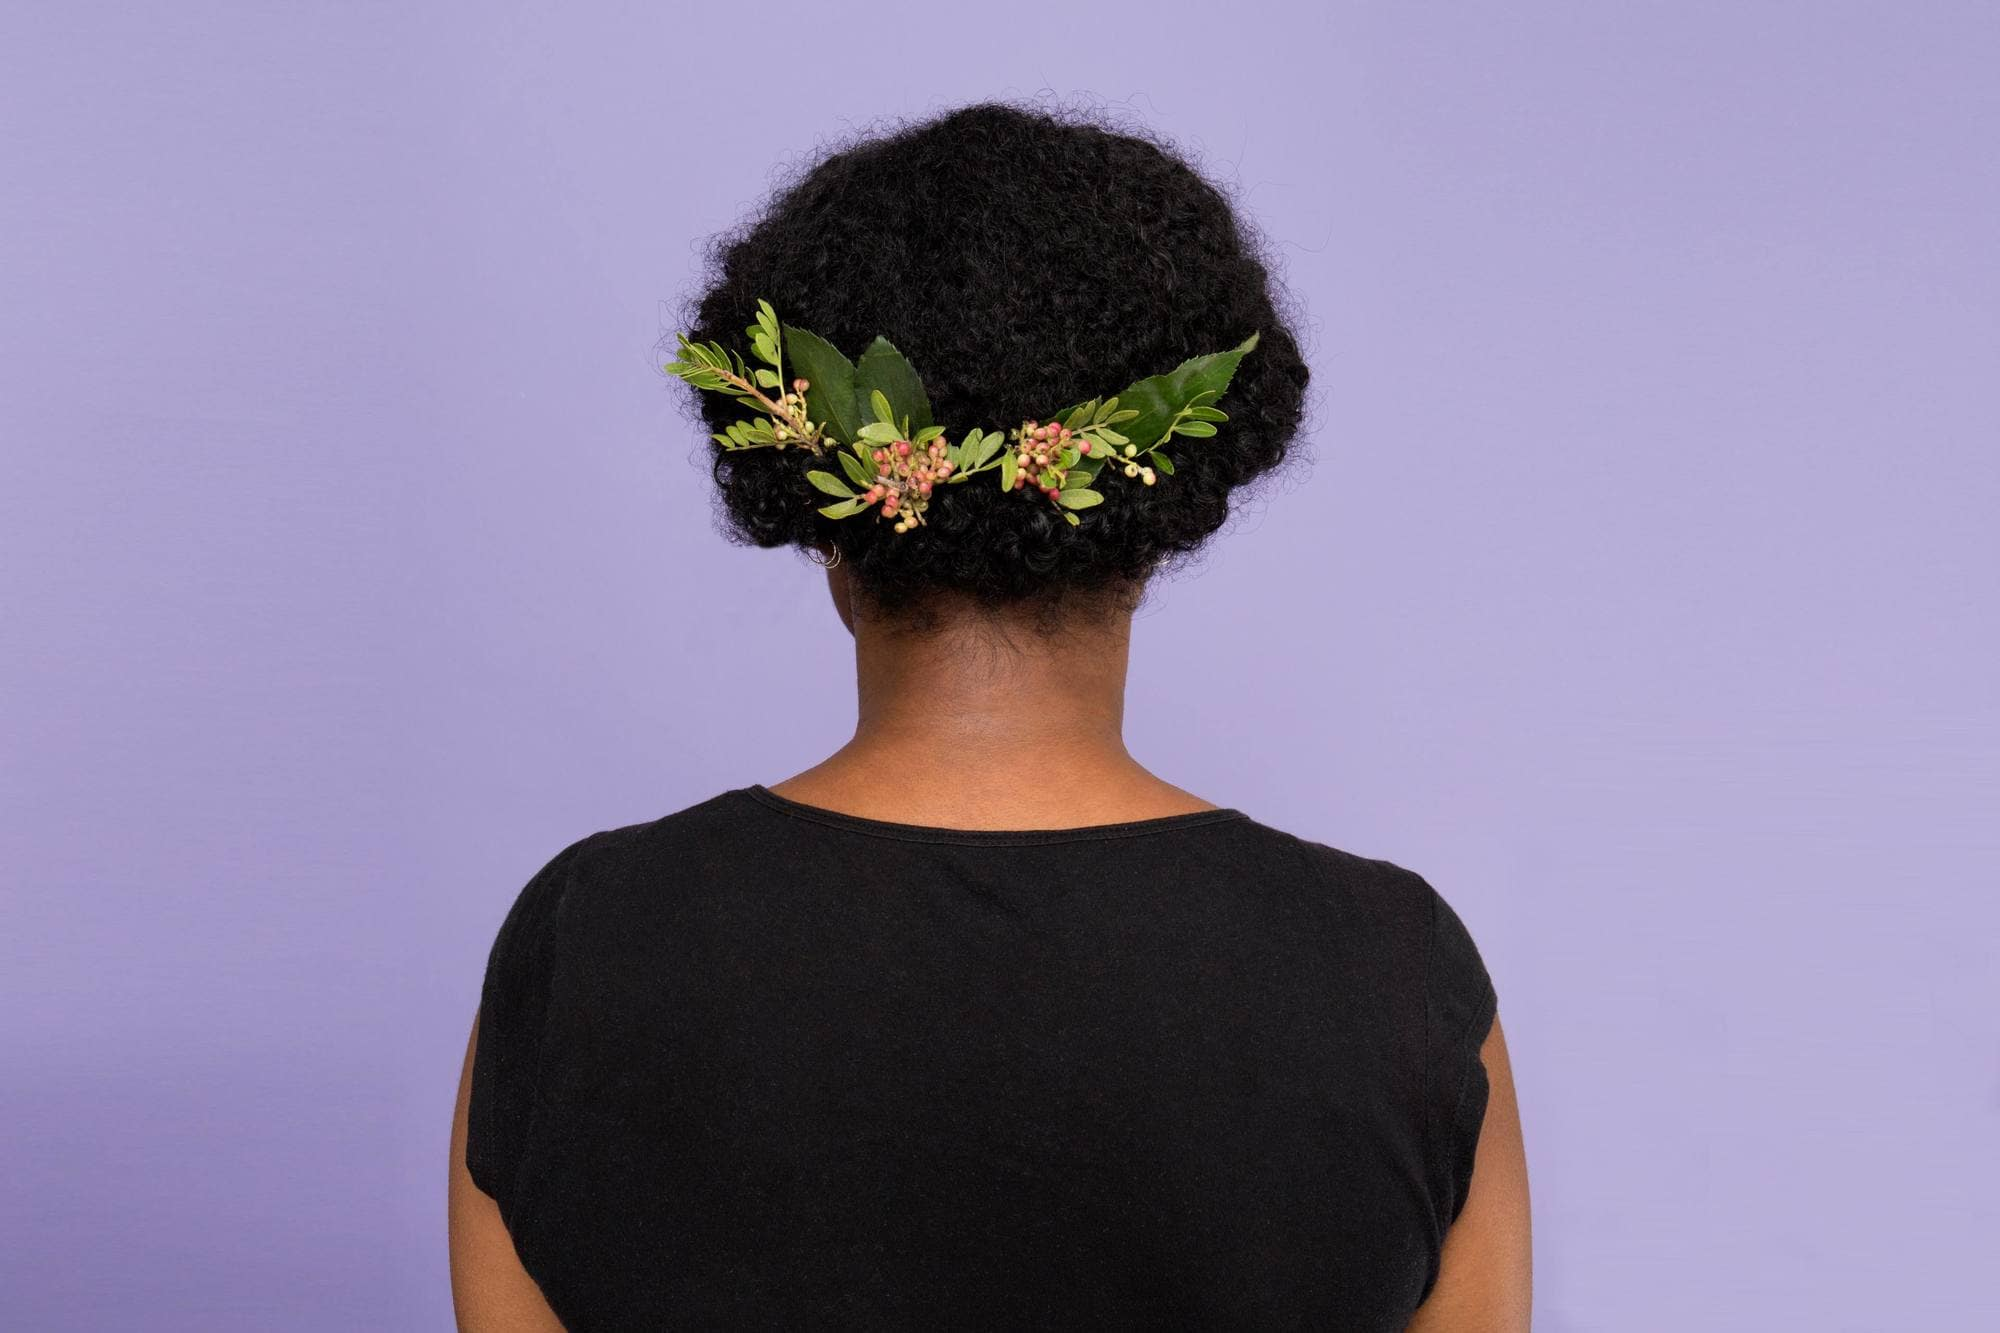 Simple updo ideas you can wear to prom. Croissant bun with floral accessory.